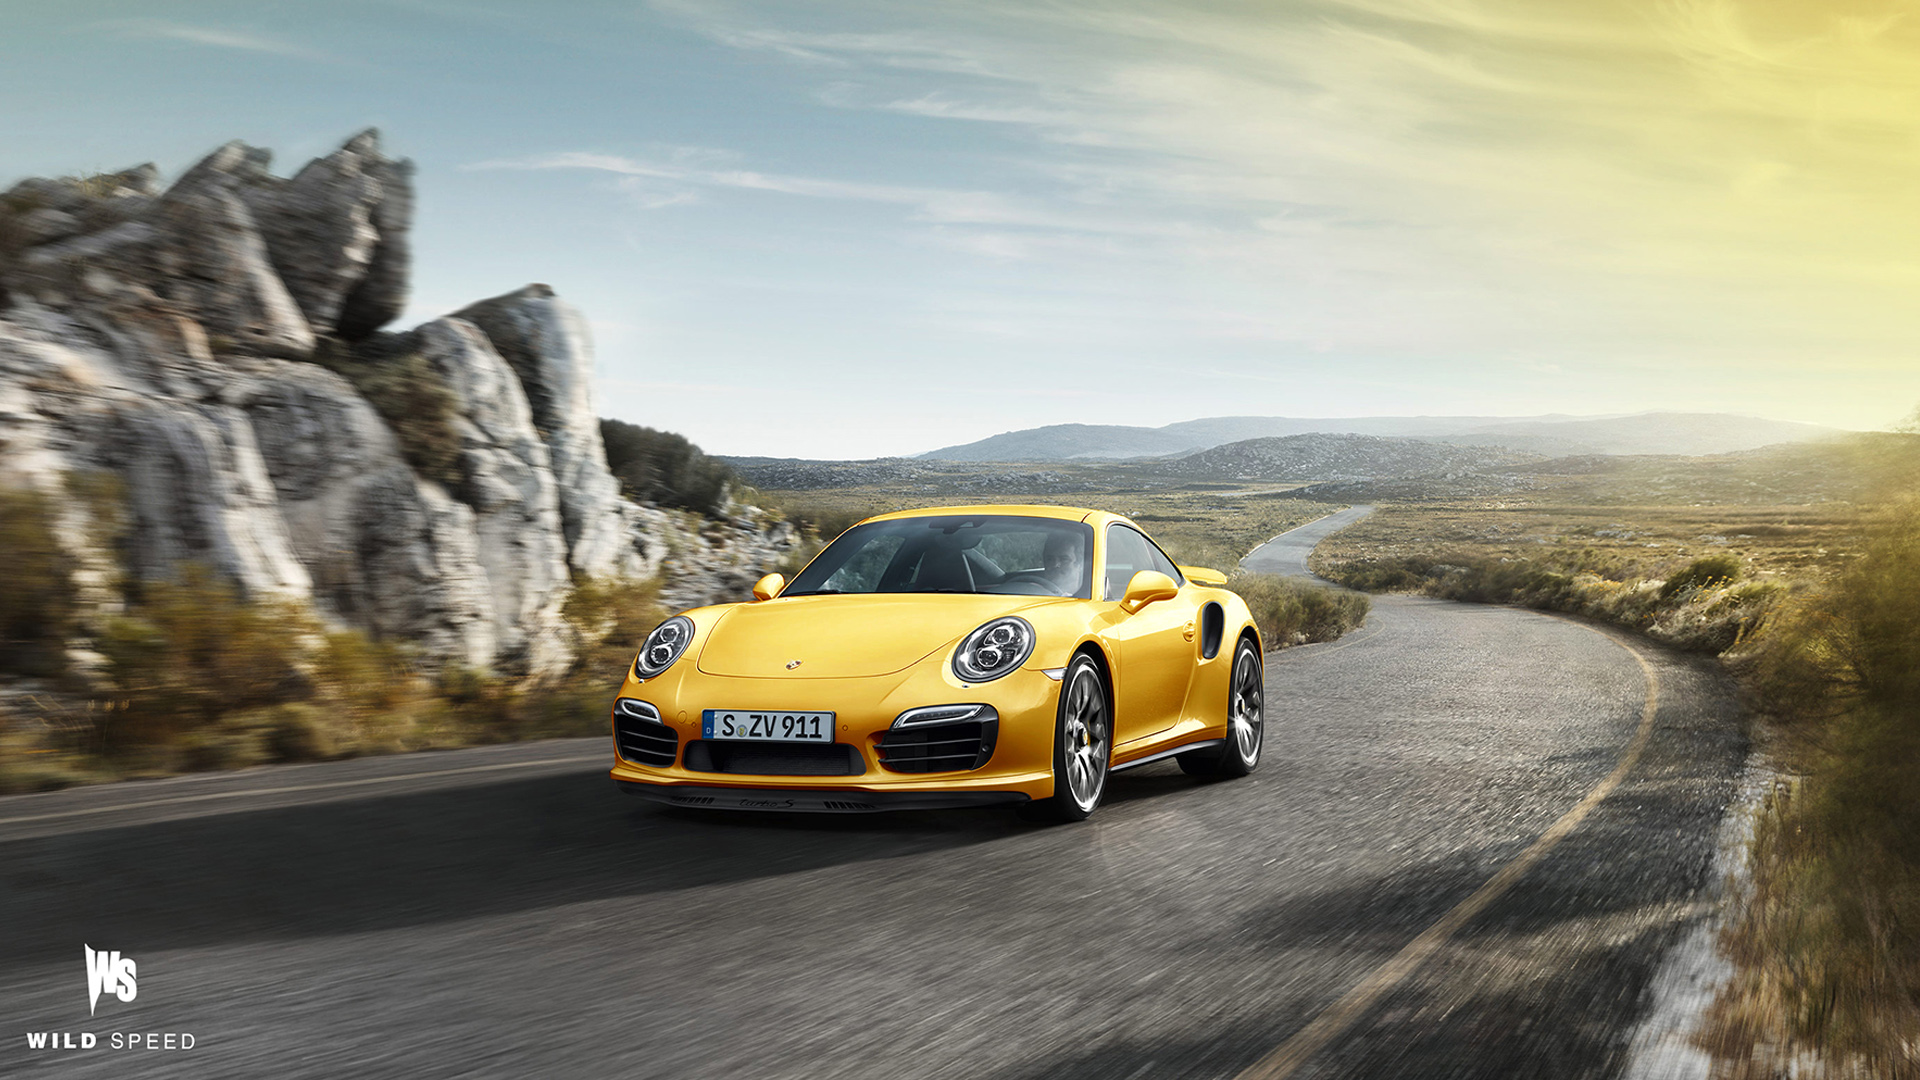 yellow porsche 911 turbo s - Porsche 911 Wallpaper Widescreen